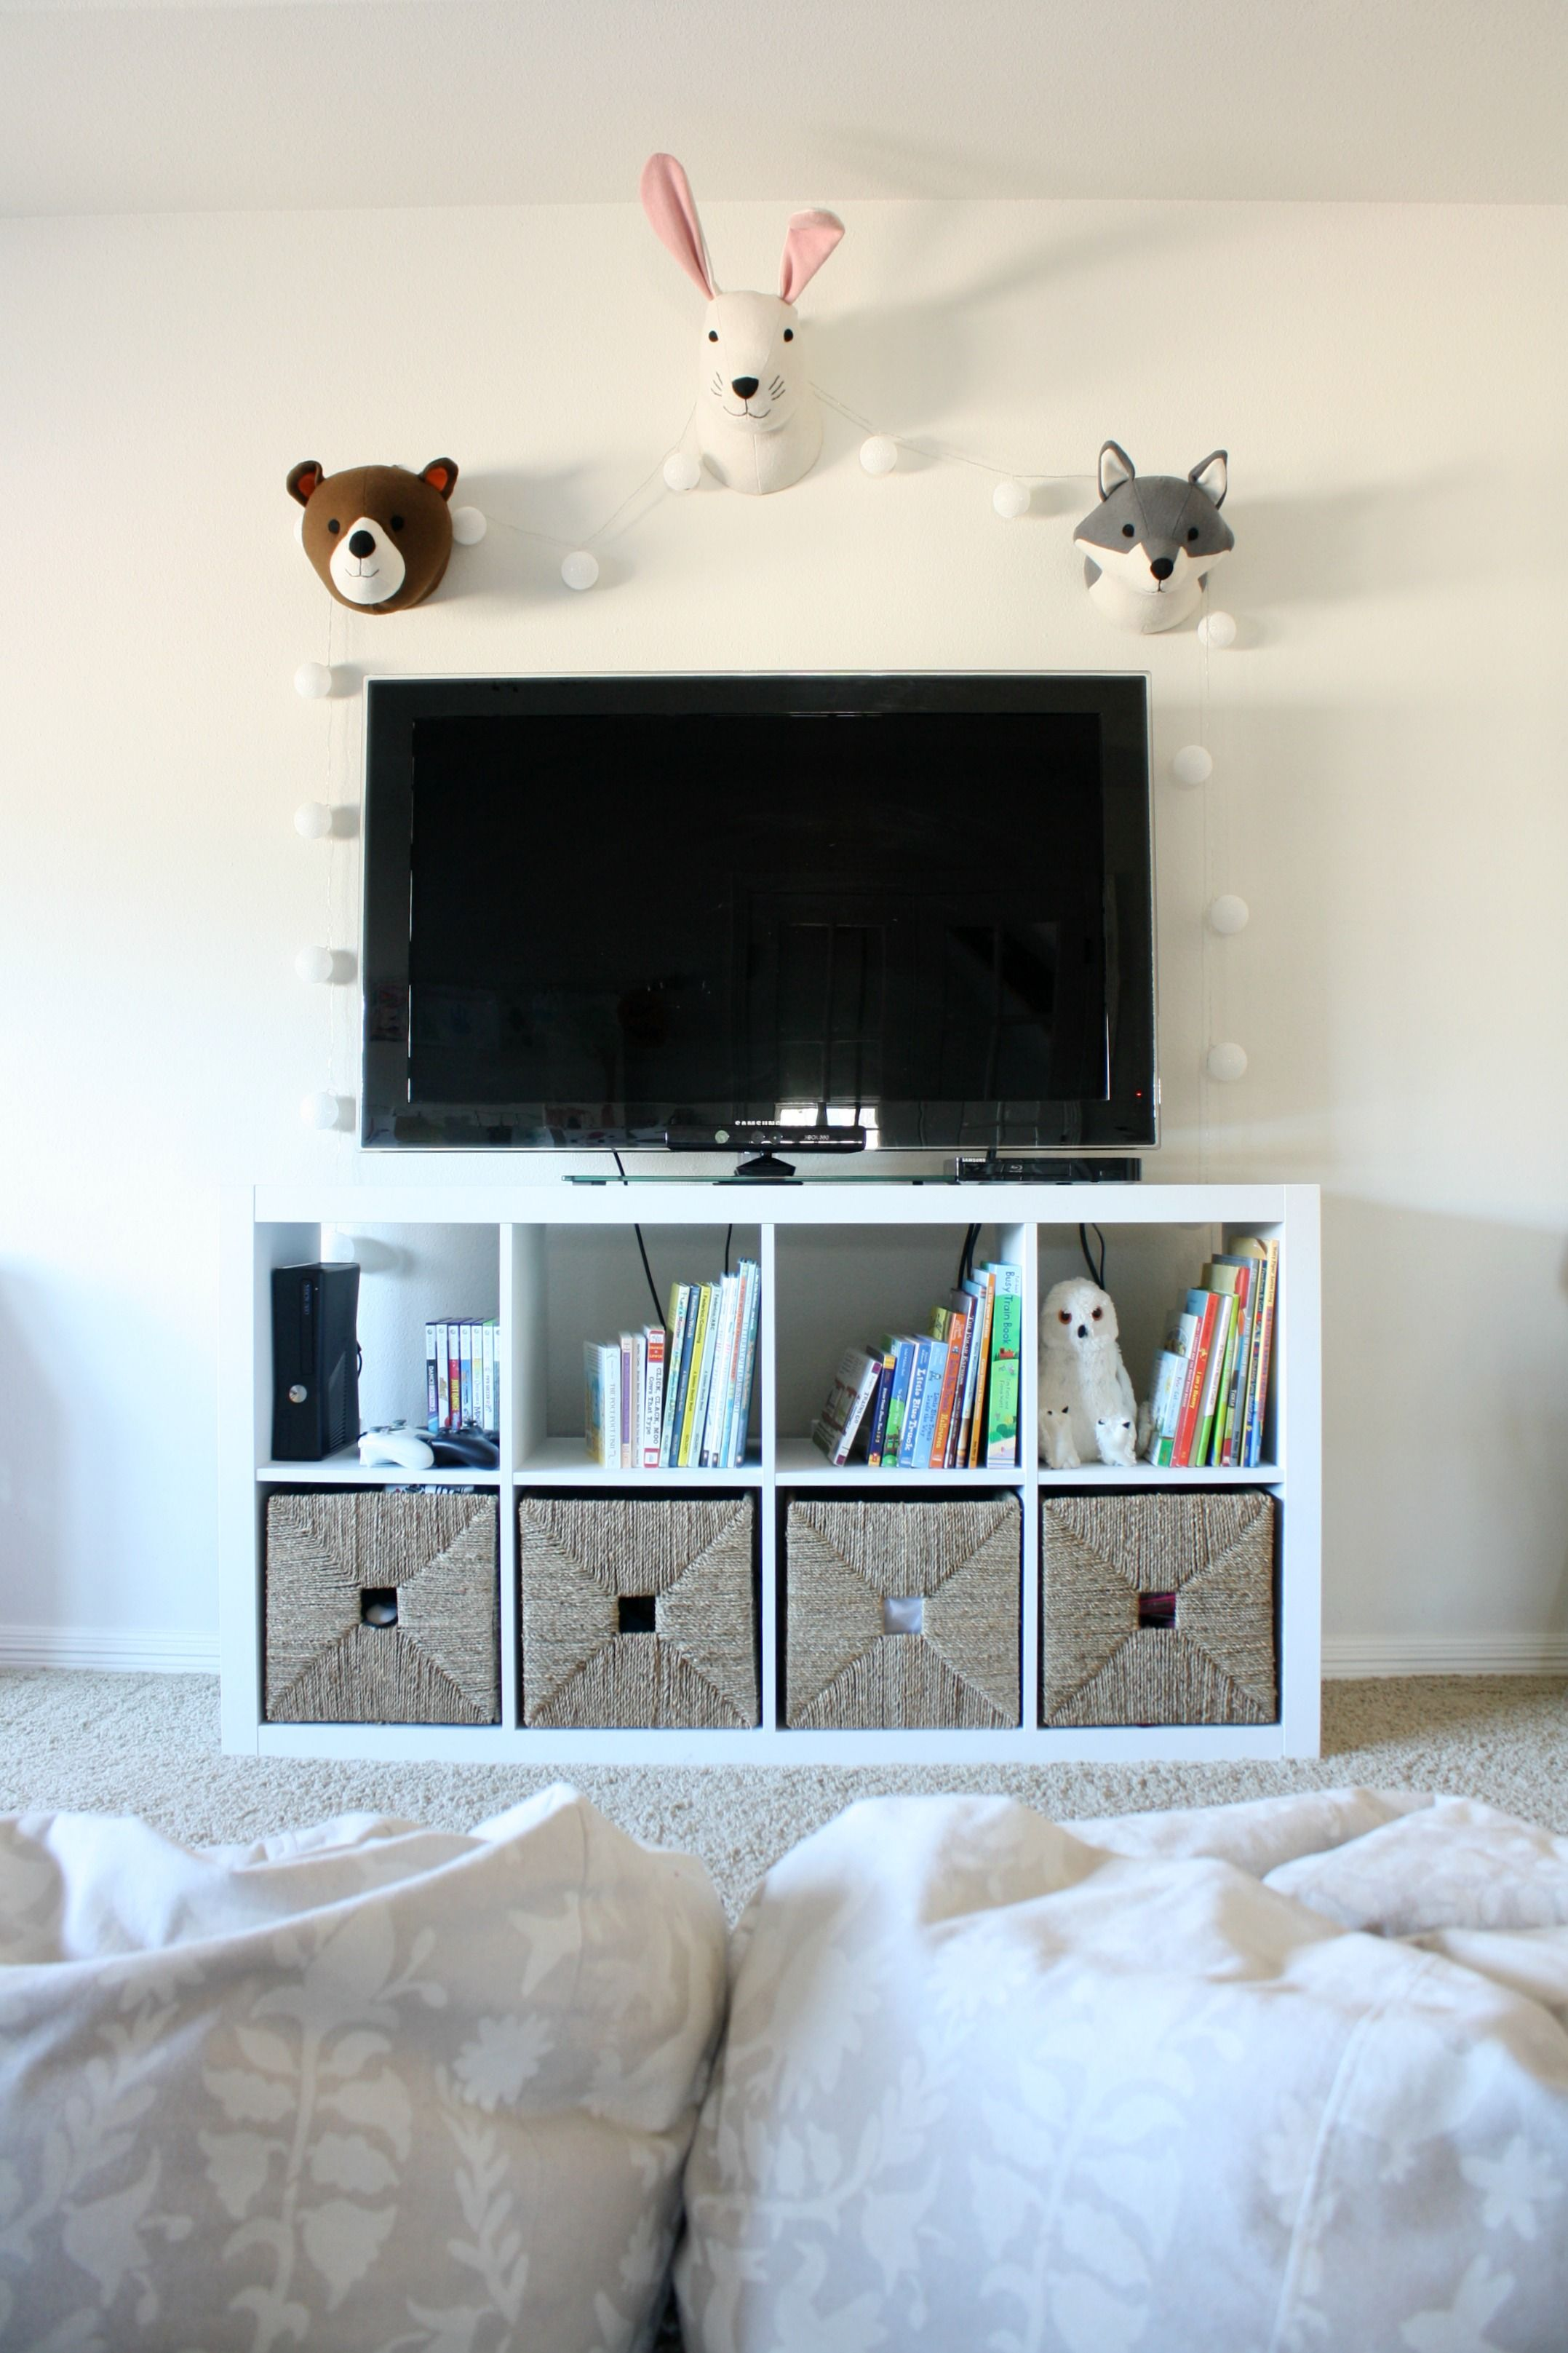 Bedroom Tv Stand Ikea Living Room Furniture Decor Tv Cabinet Ikea Ikea Tv Stand Ikea Tv Check Out Our Extensive Range Of Tv Stands And Media Benches